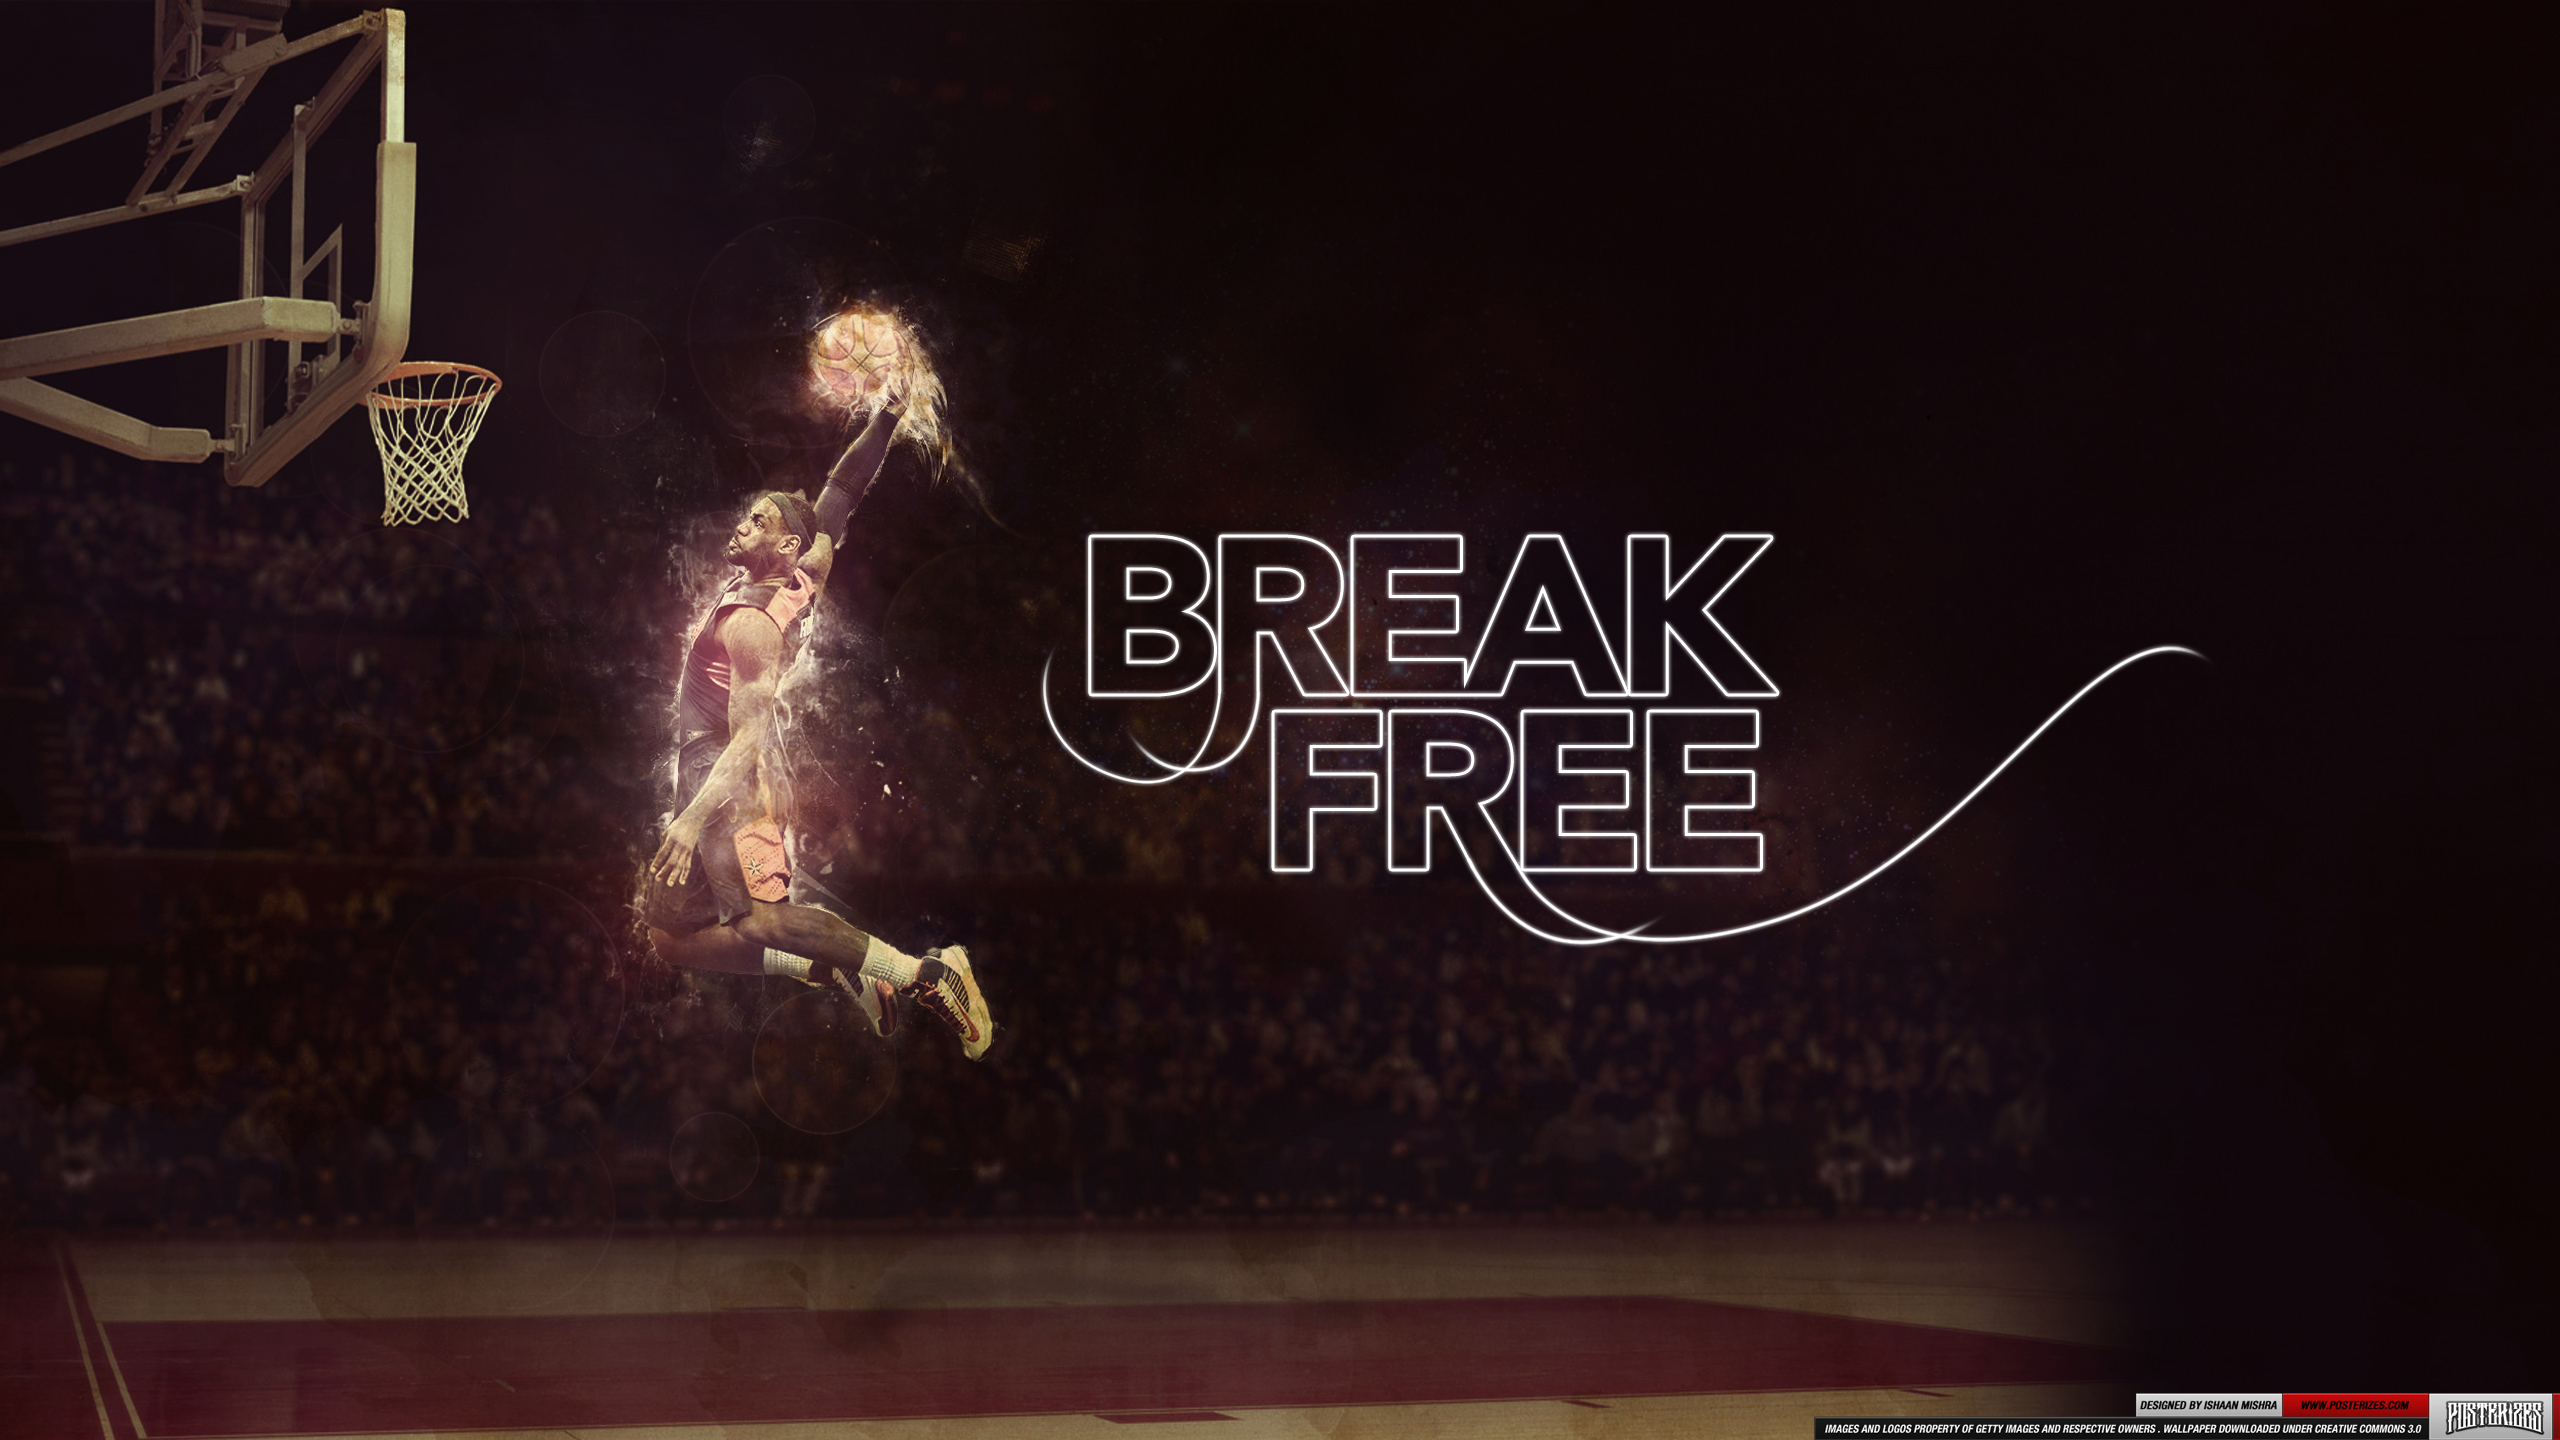 Lebron james wallpaper by ishaanmishra on deviantart lebron james wallpaper by ishaanmishra lebron james wallpaper by ishaanmishra voltagebd Image collections